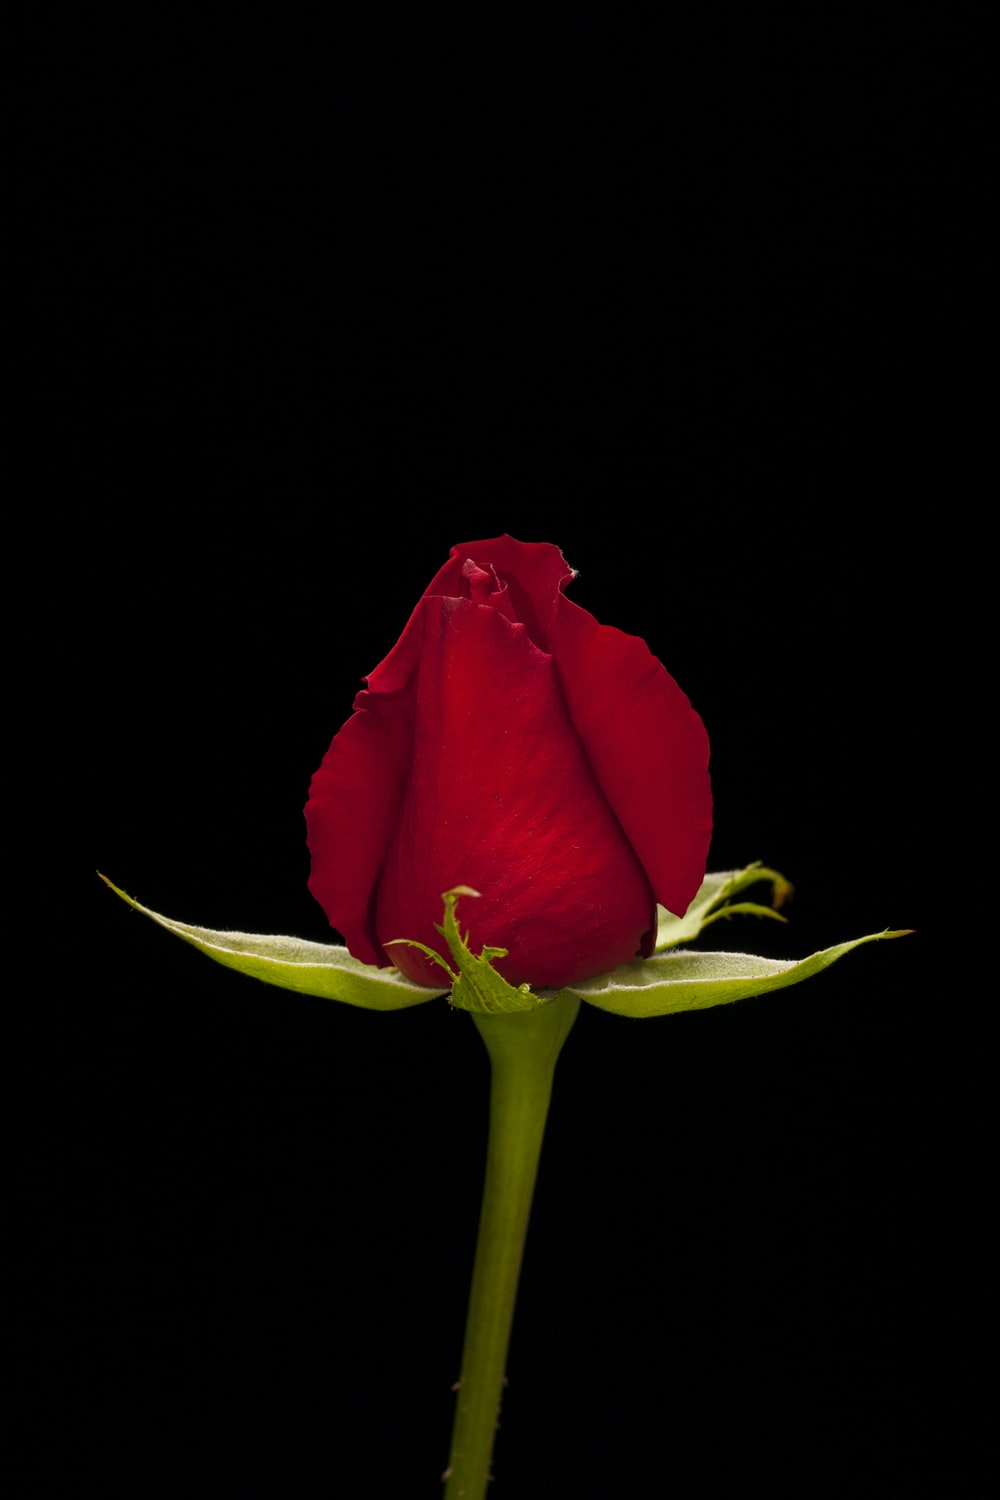 red rose in black background